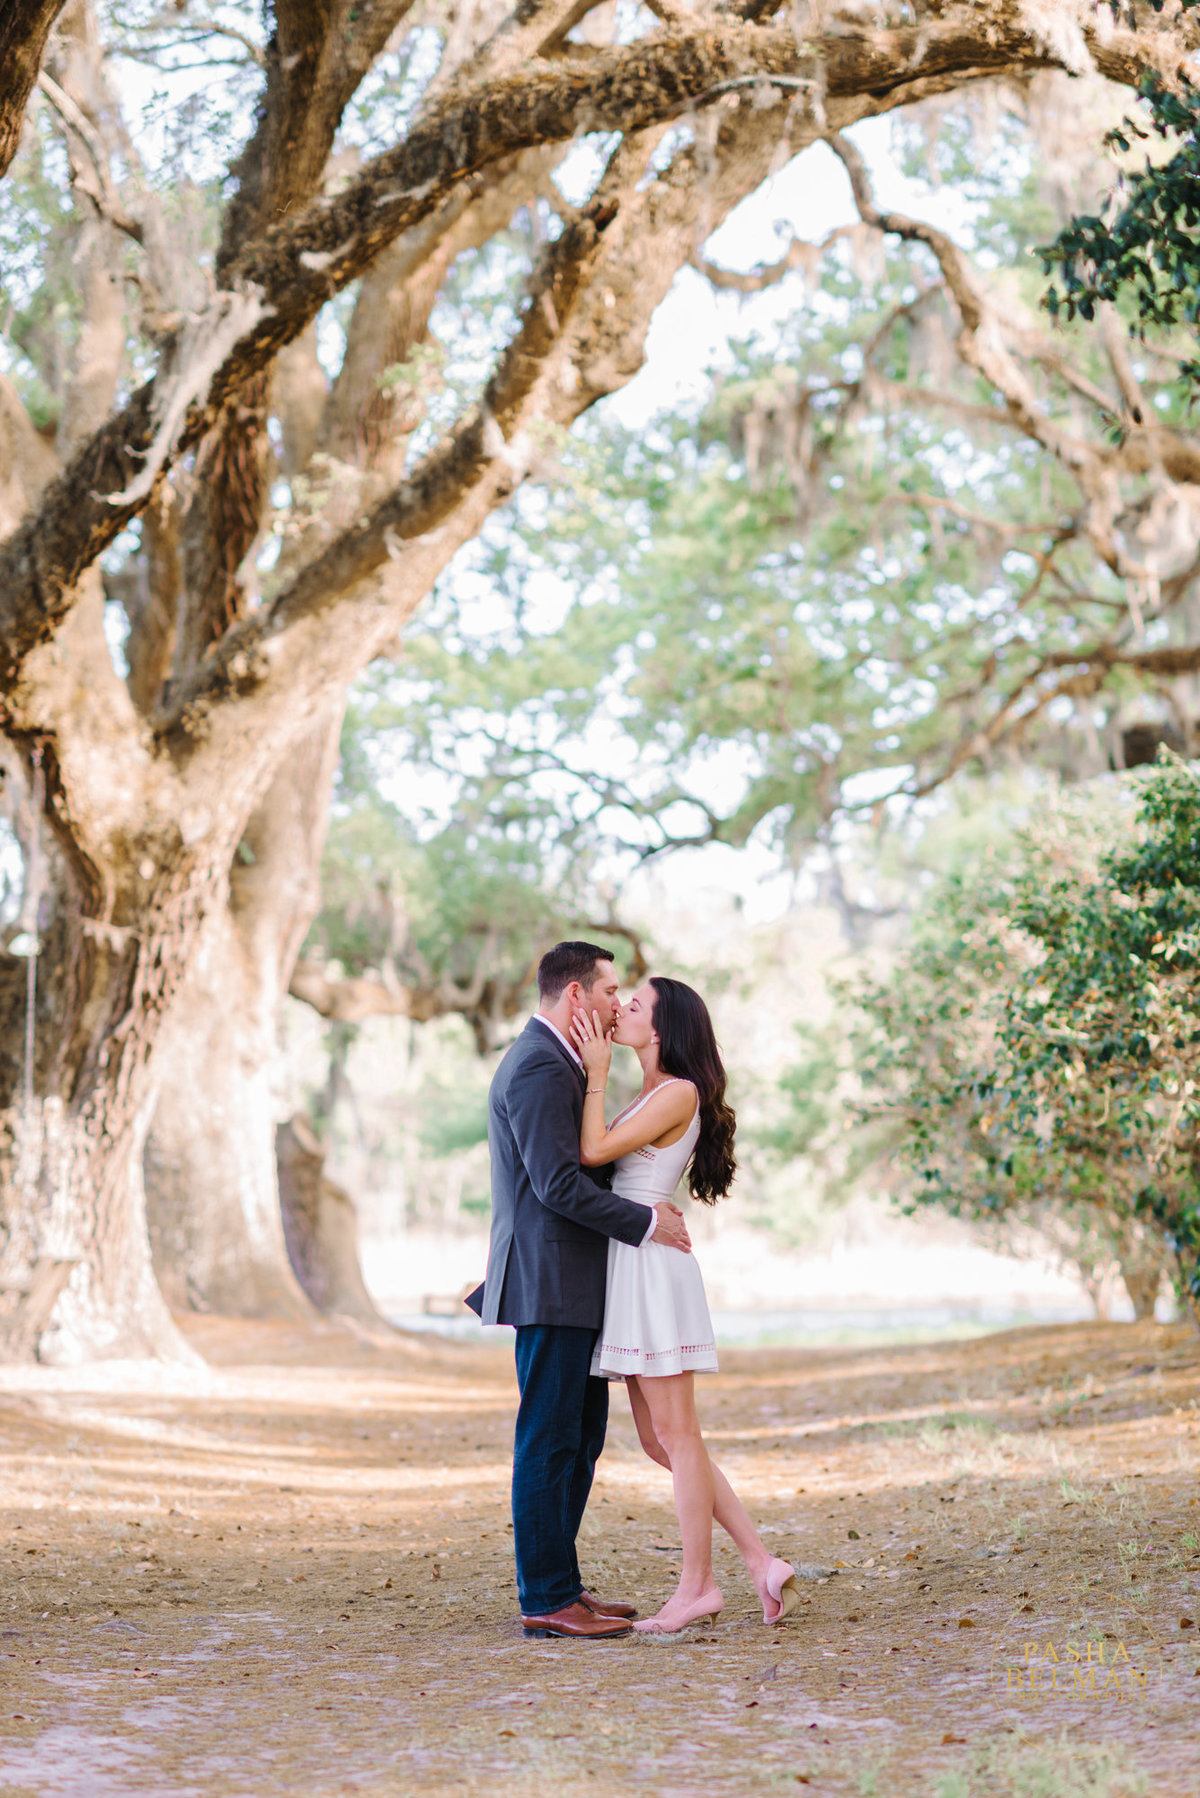 Charleston Engagement Photography | Engagement Pictures in Charleston | Engagement Portraits by Pasha Belman Photographer-5